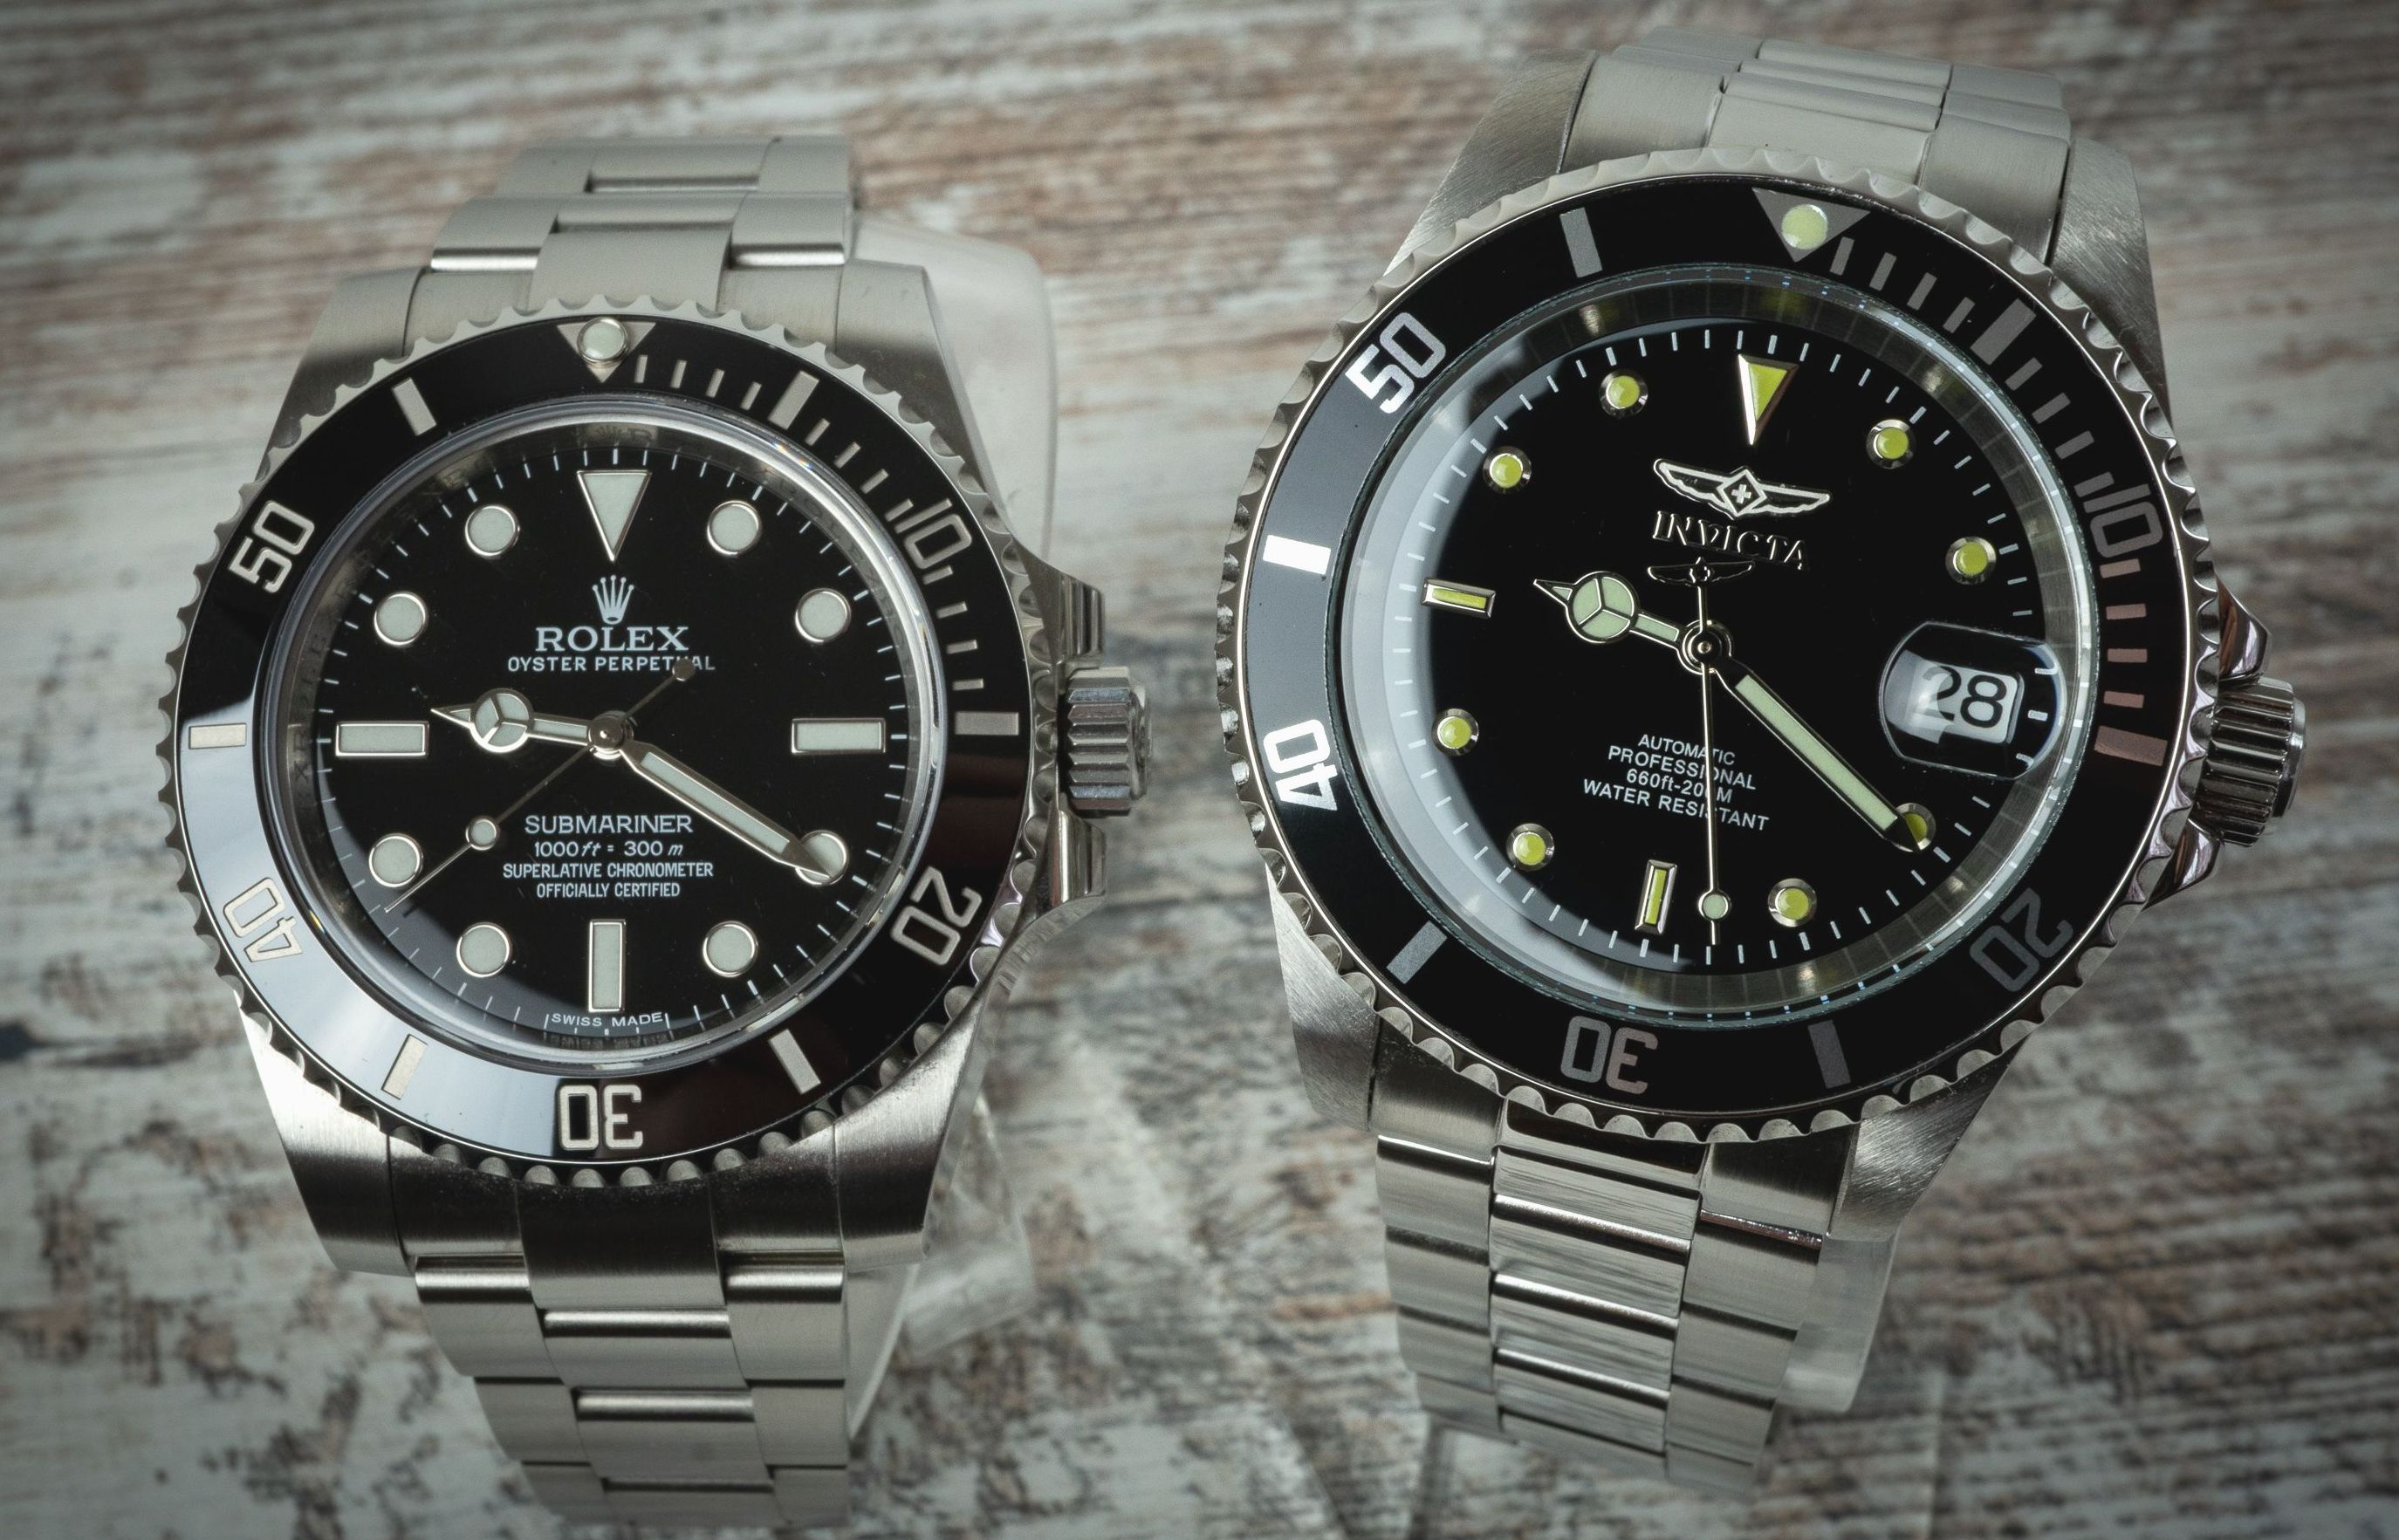 Invicta 8926OB Automatic Taucheruhr Rolex Submariner Alternative Vergleich Test Blog